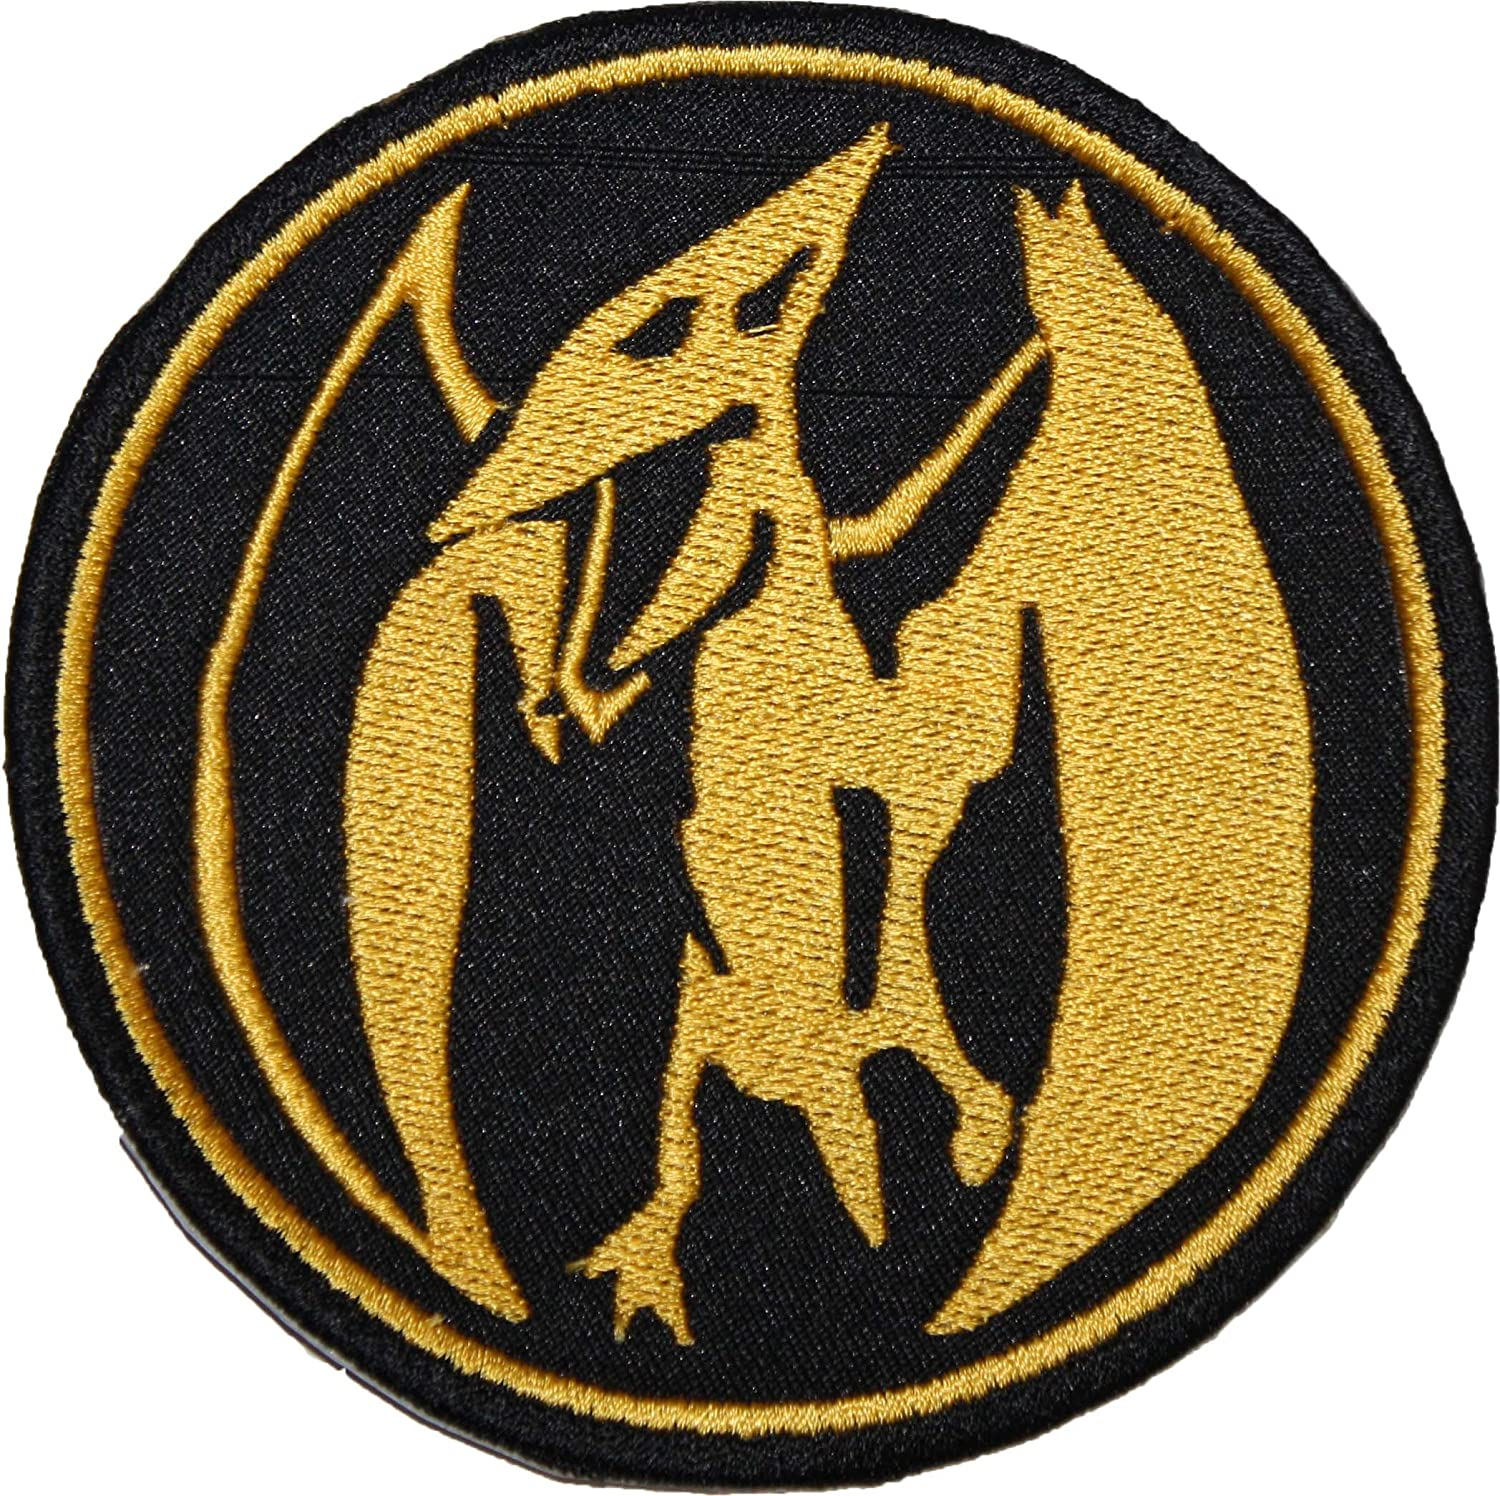 "Power Rangers 4.5/"" Embroidered Sew//Iron-on Patch Premium Quality"